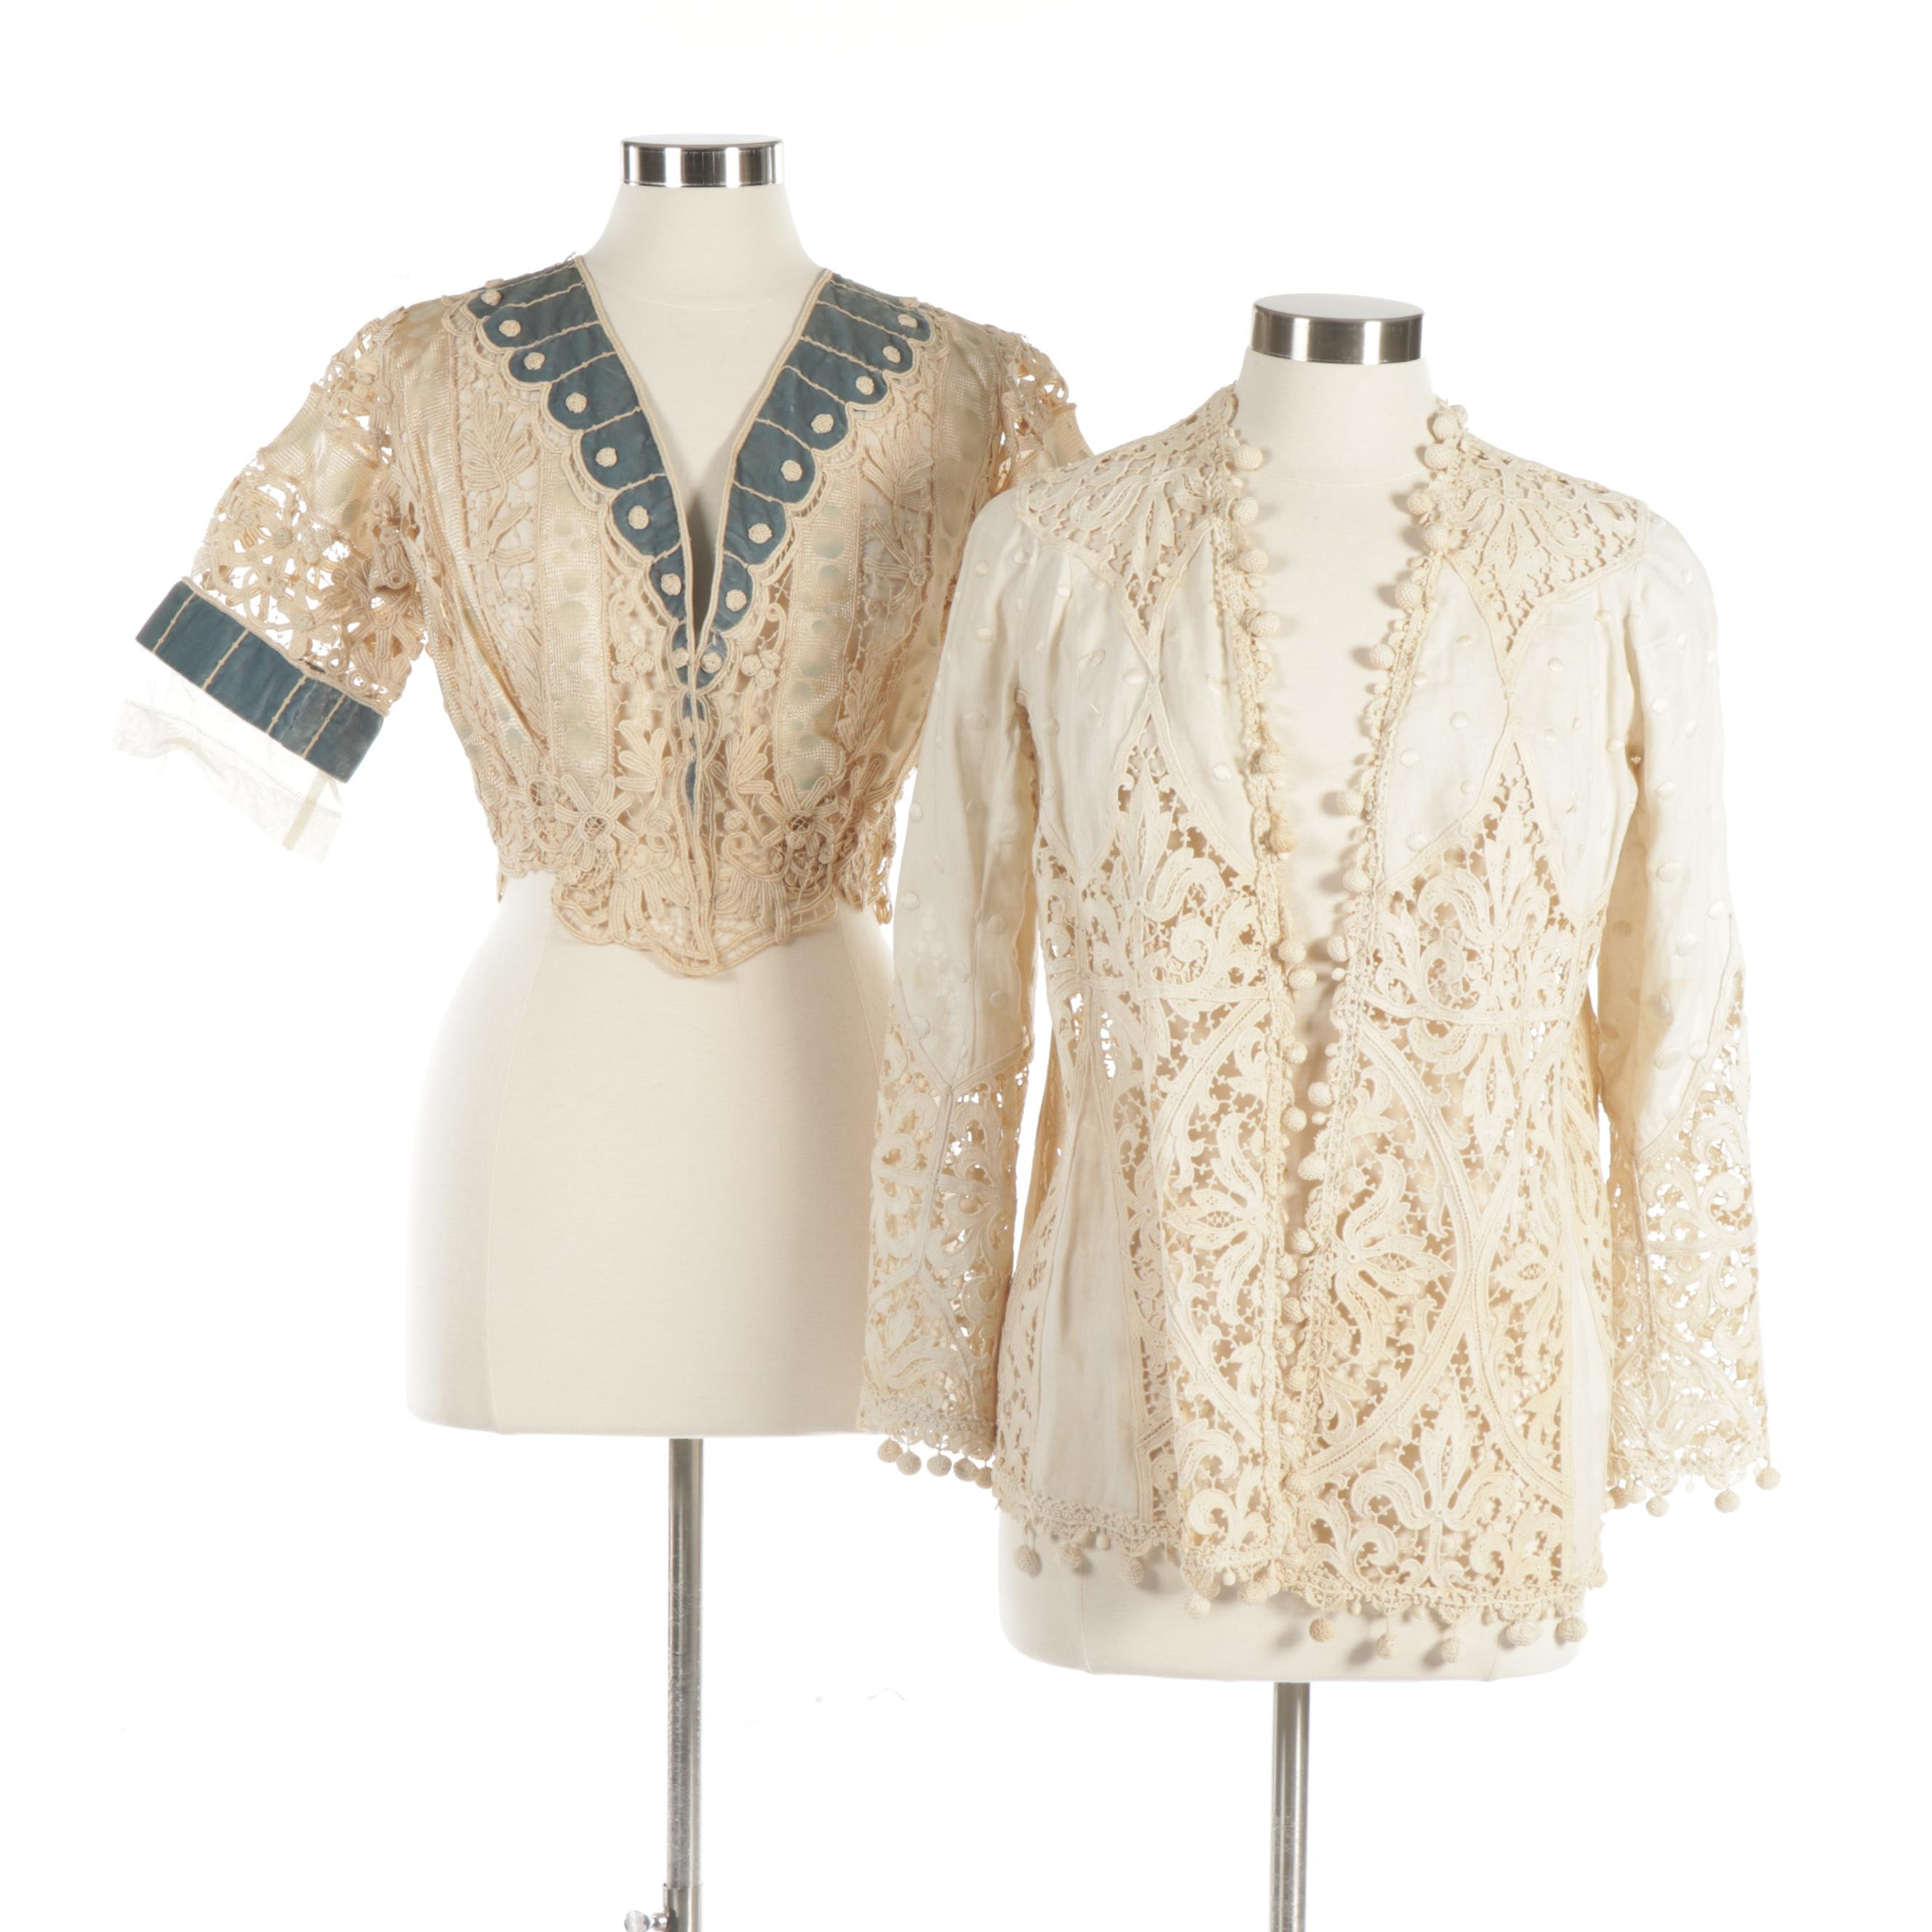 Pair of Victorian Blouses with Hand Tatted Lace